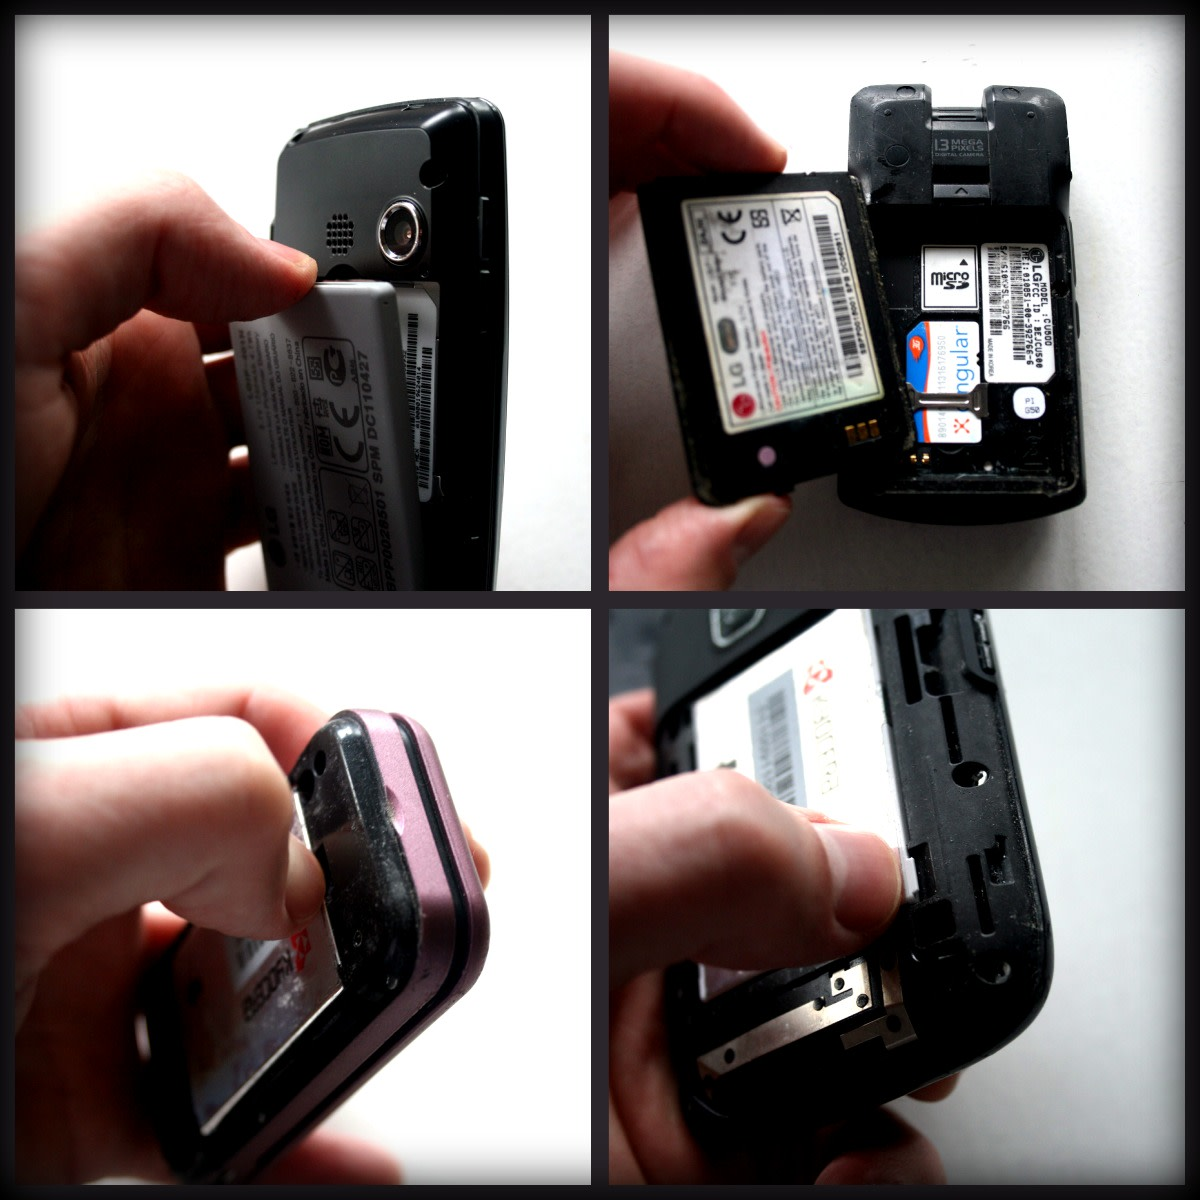 Each of these phones had fairly easy to spot access grooves. I was able to remove all the case backs and the batteries with just my hands.